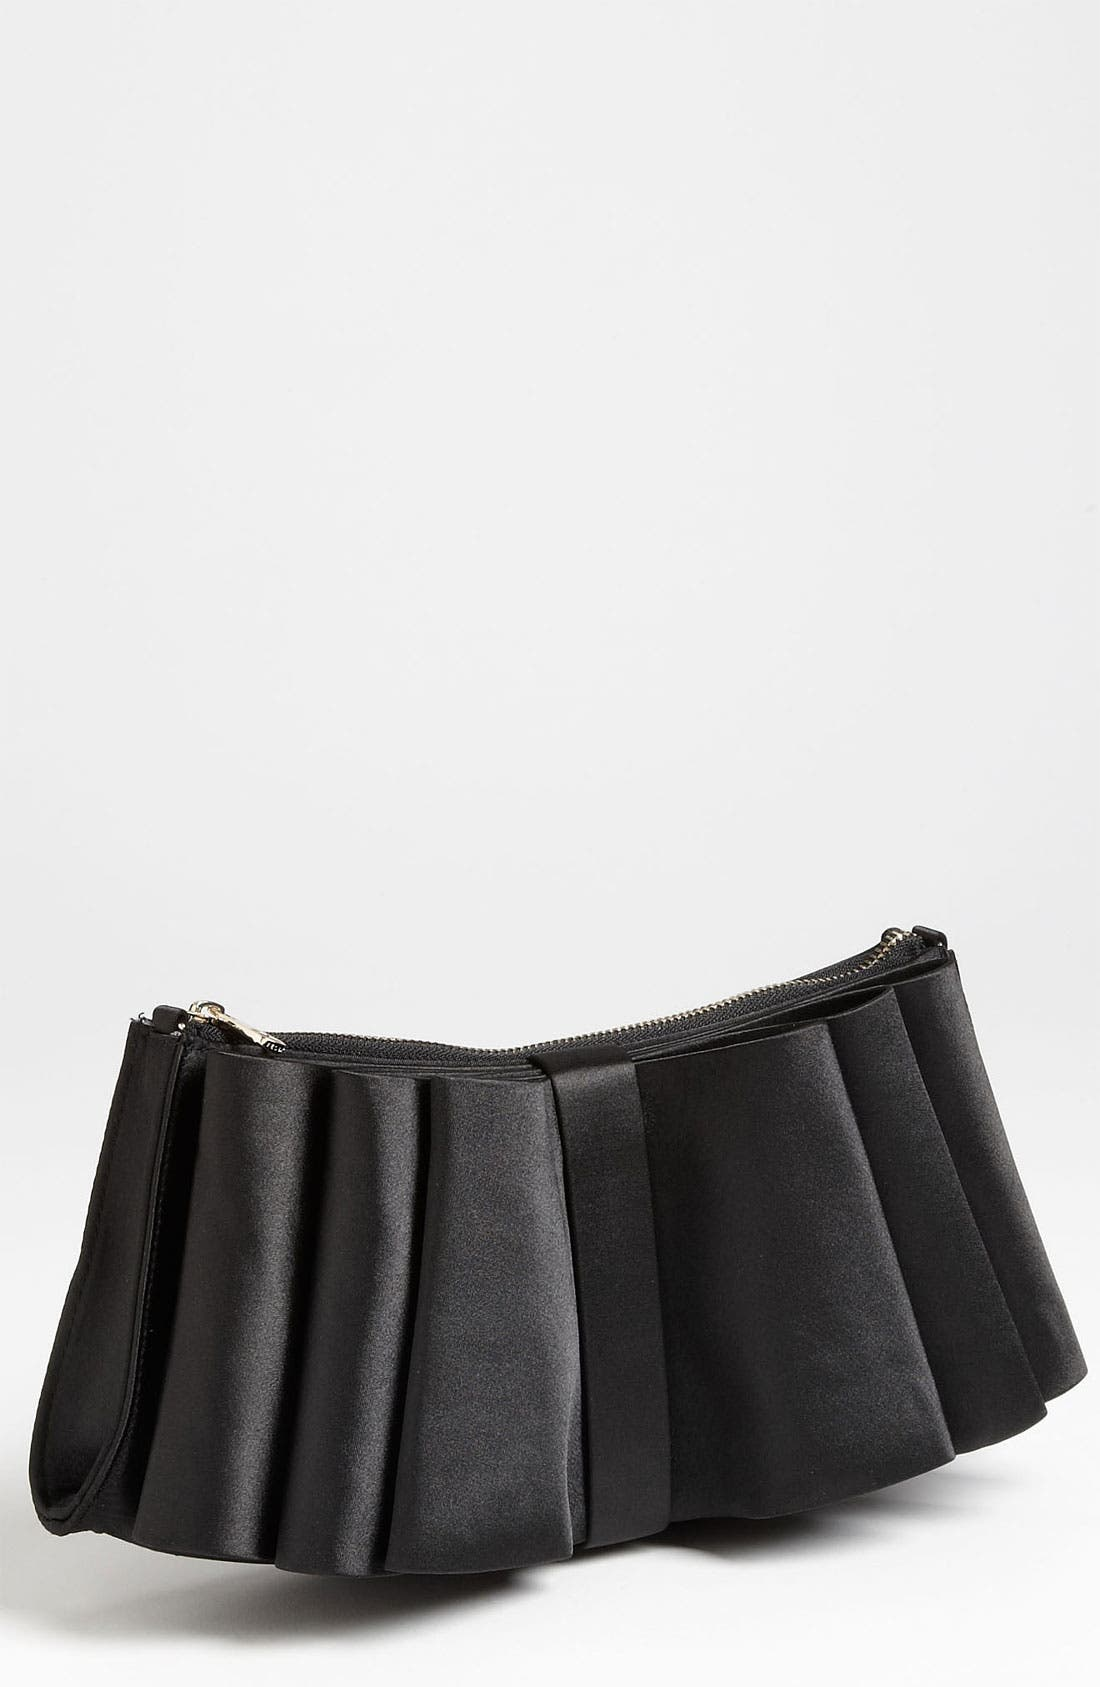 Alternate Image 1 Selected - Ted Baker London 'Origami Folds' Clutch